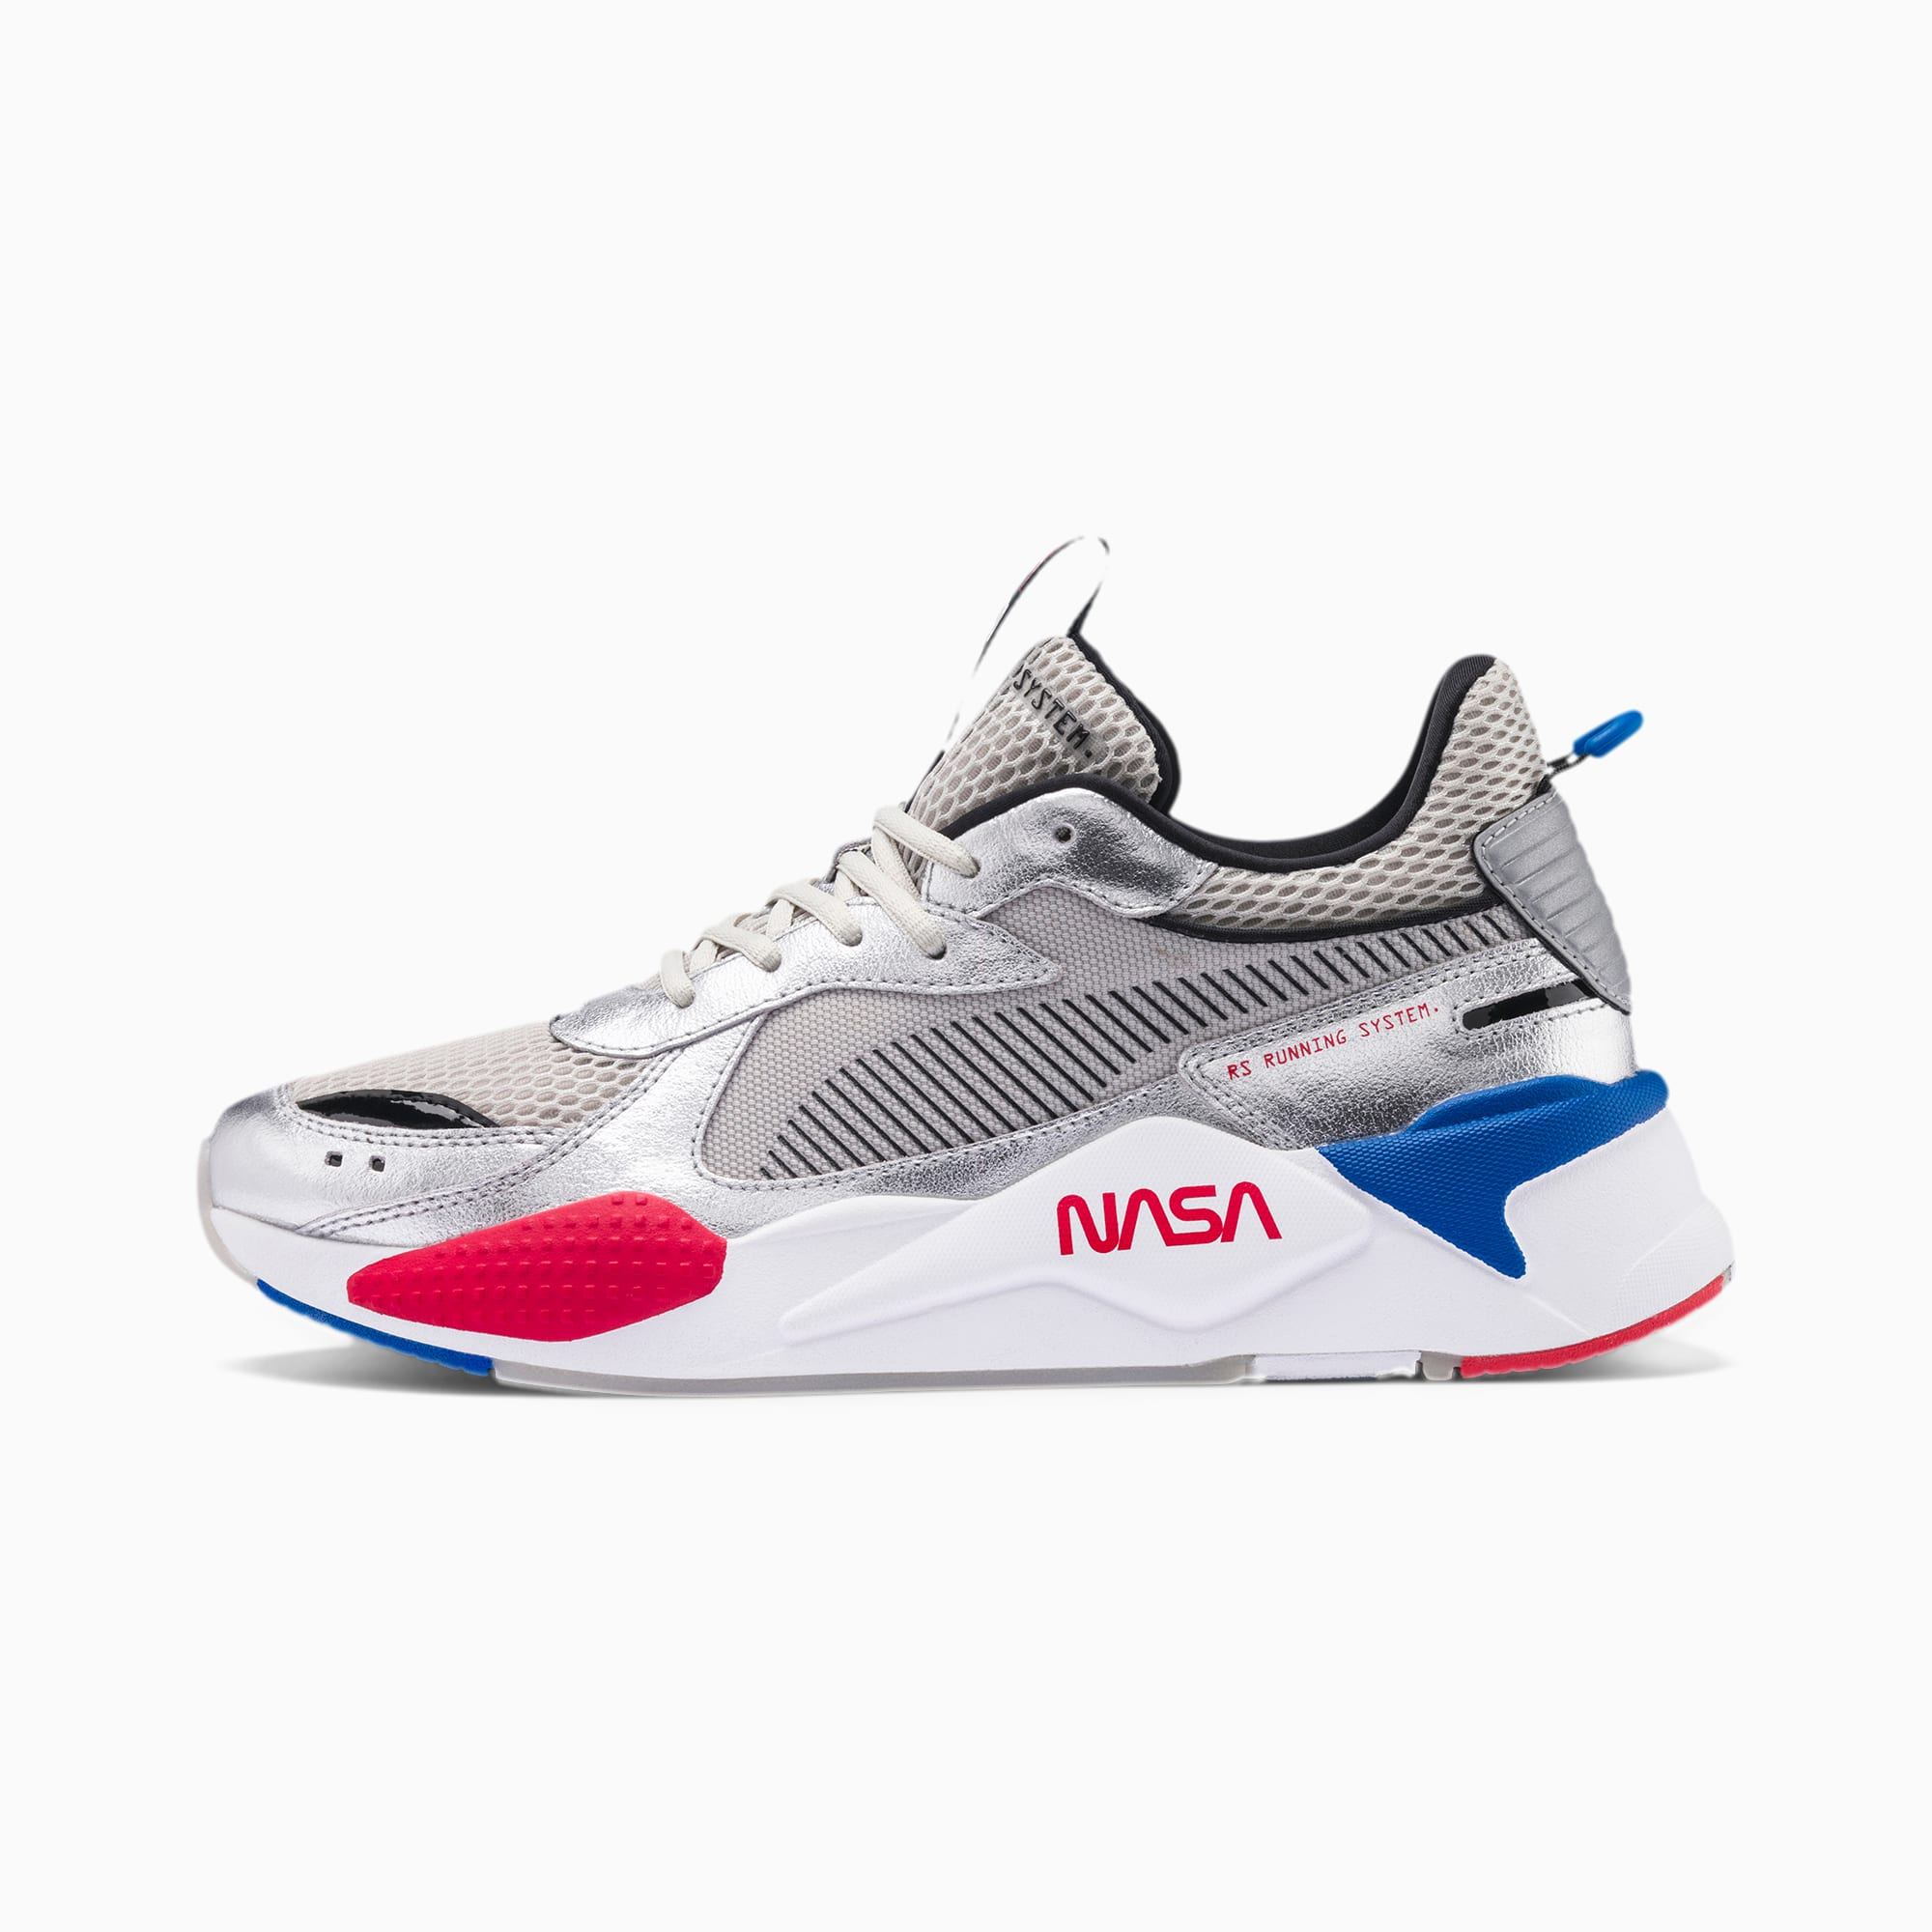 RS-X Space Agency Sneakers